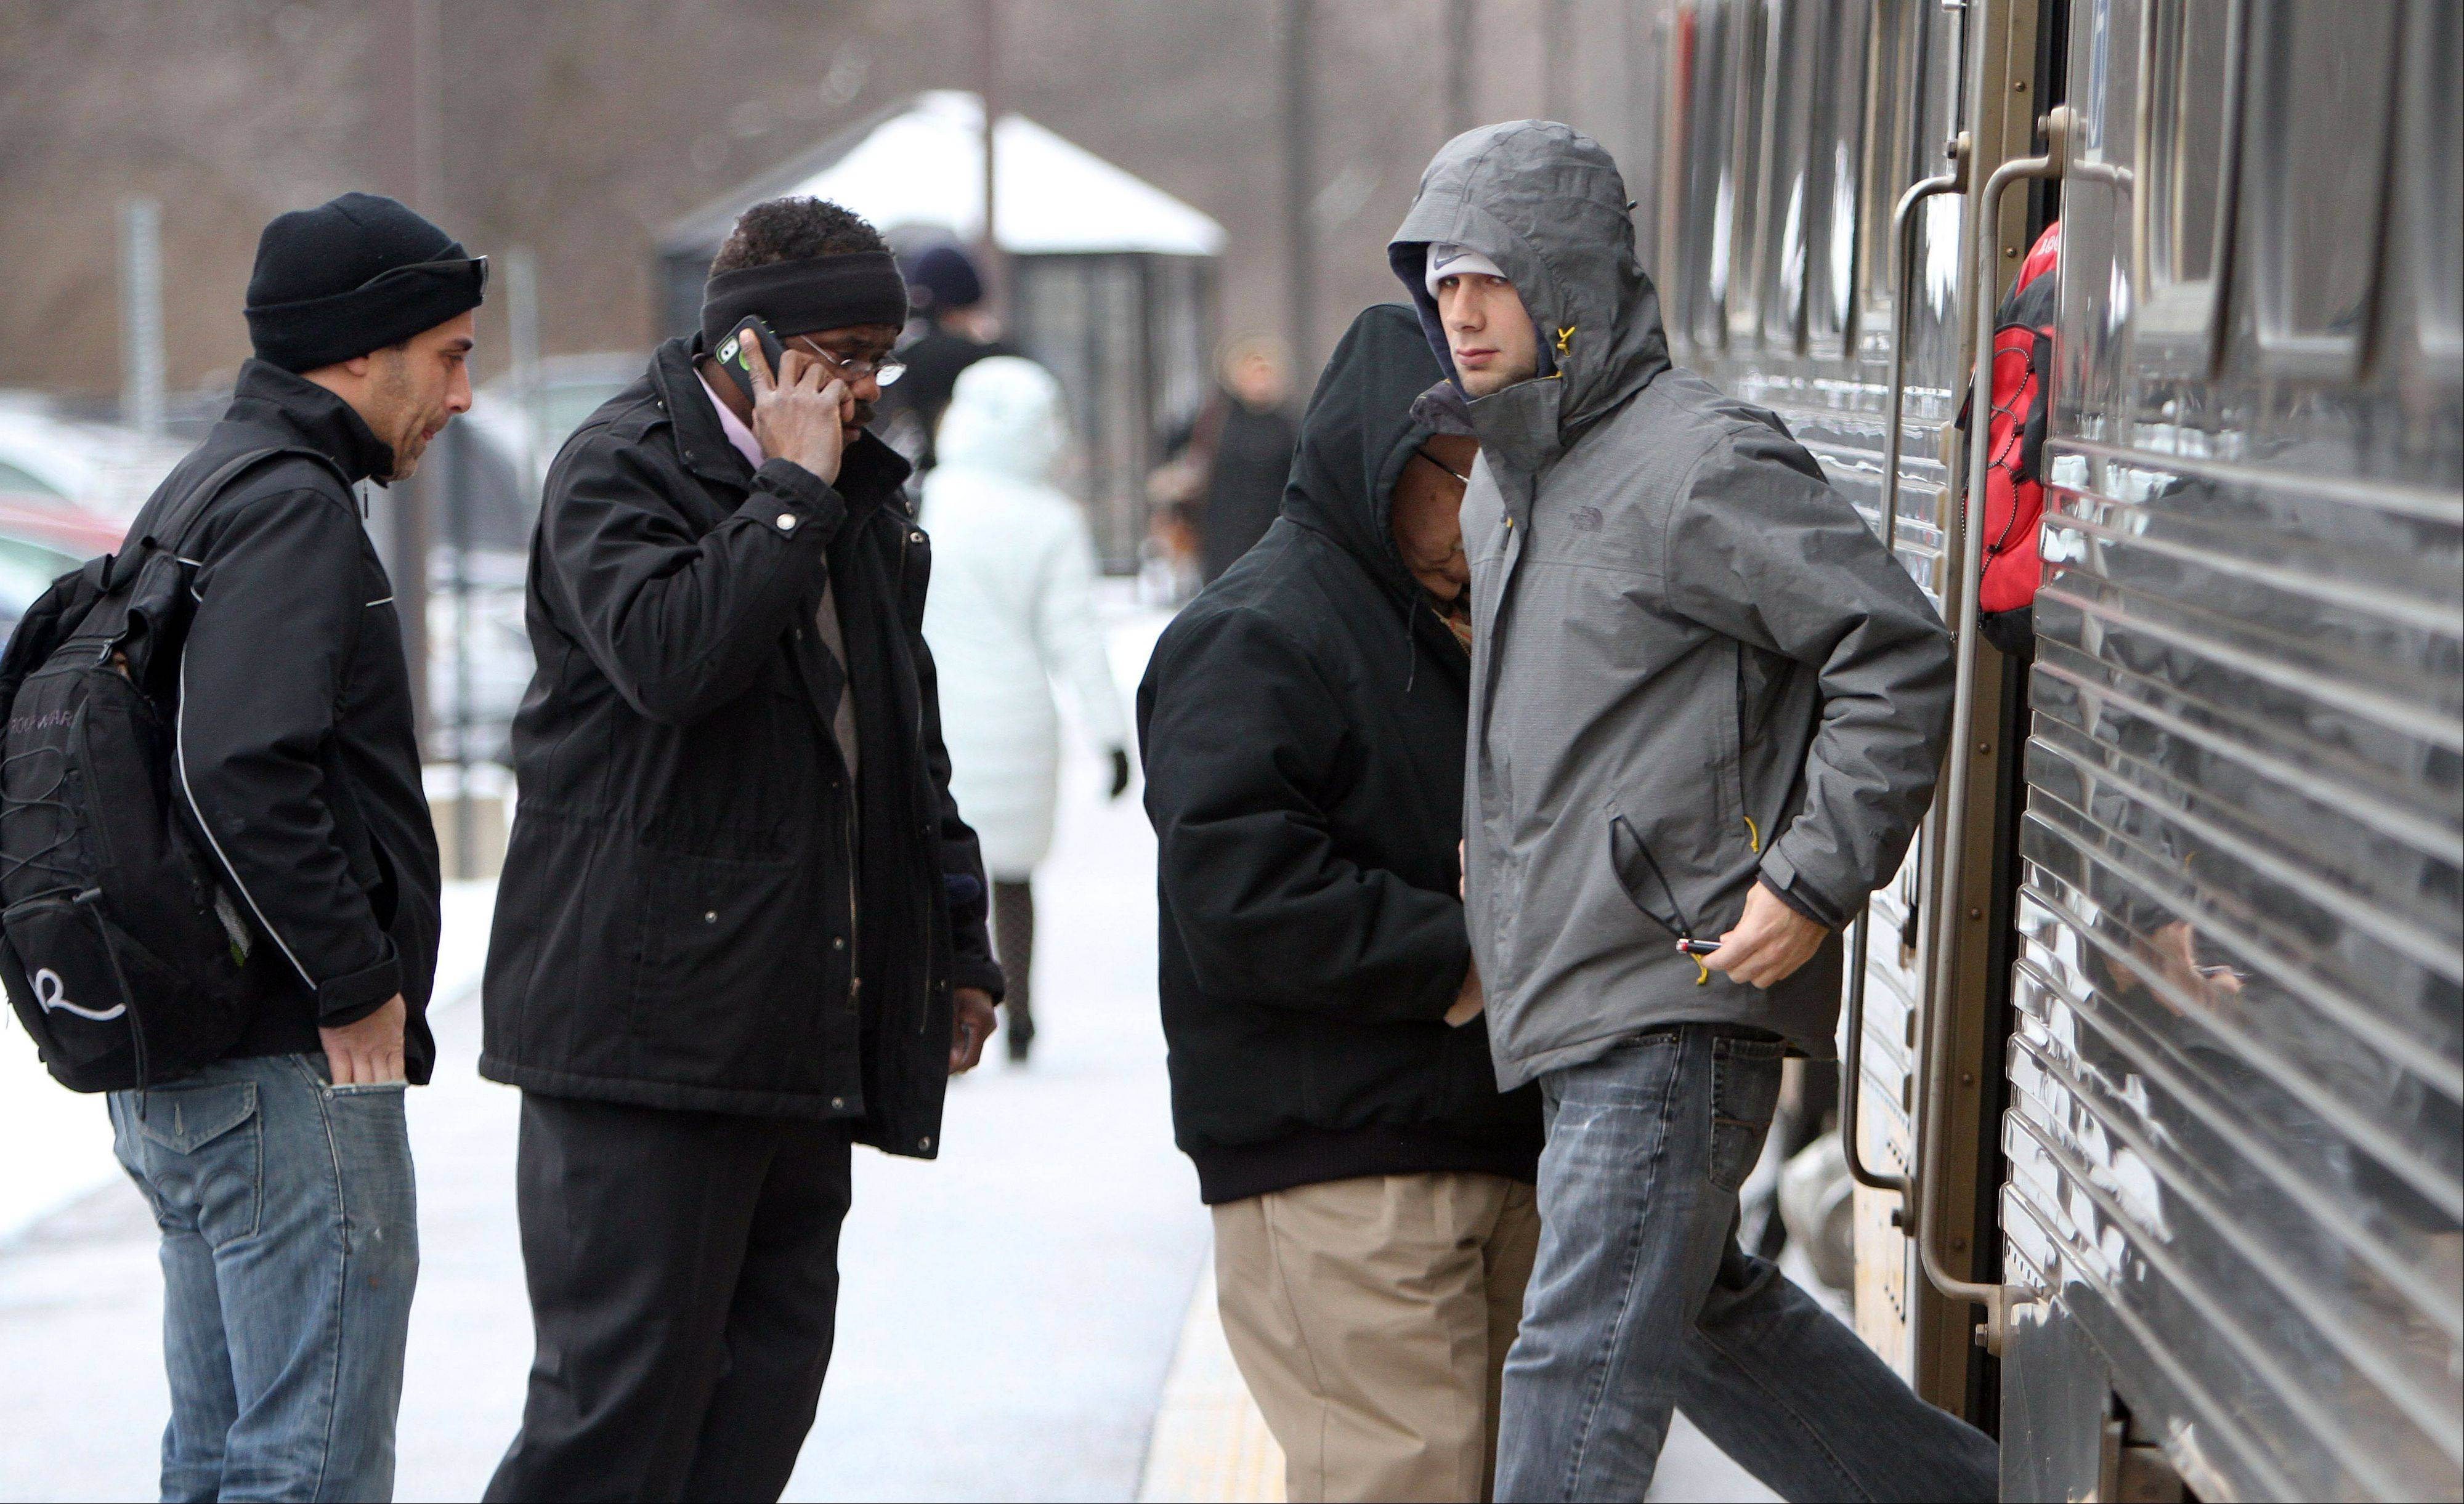 Metra commuters bundled up Thursday morning in Libertyville as temperatures dropped into the single digits.